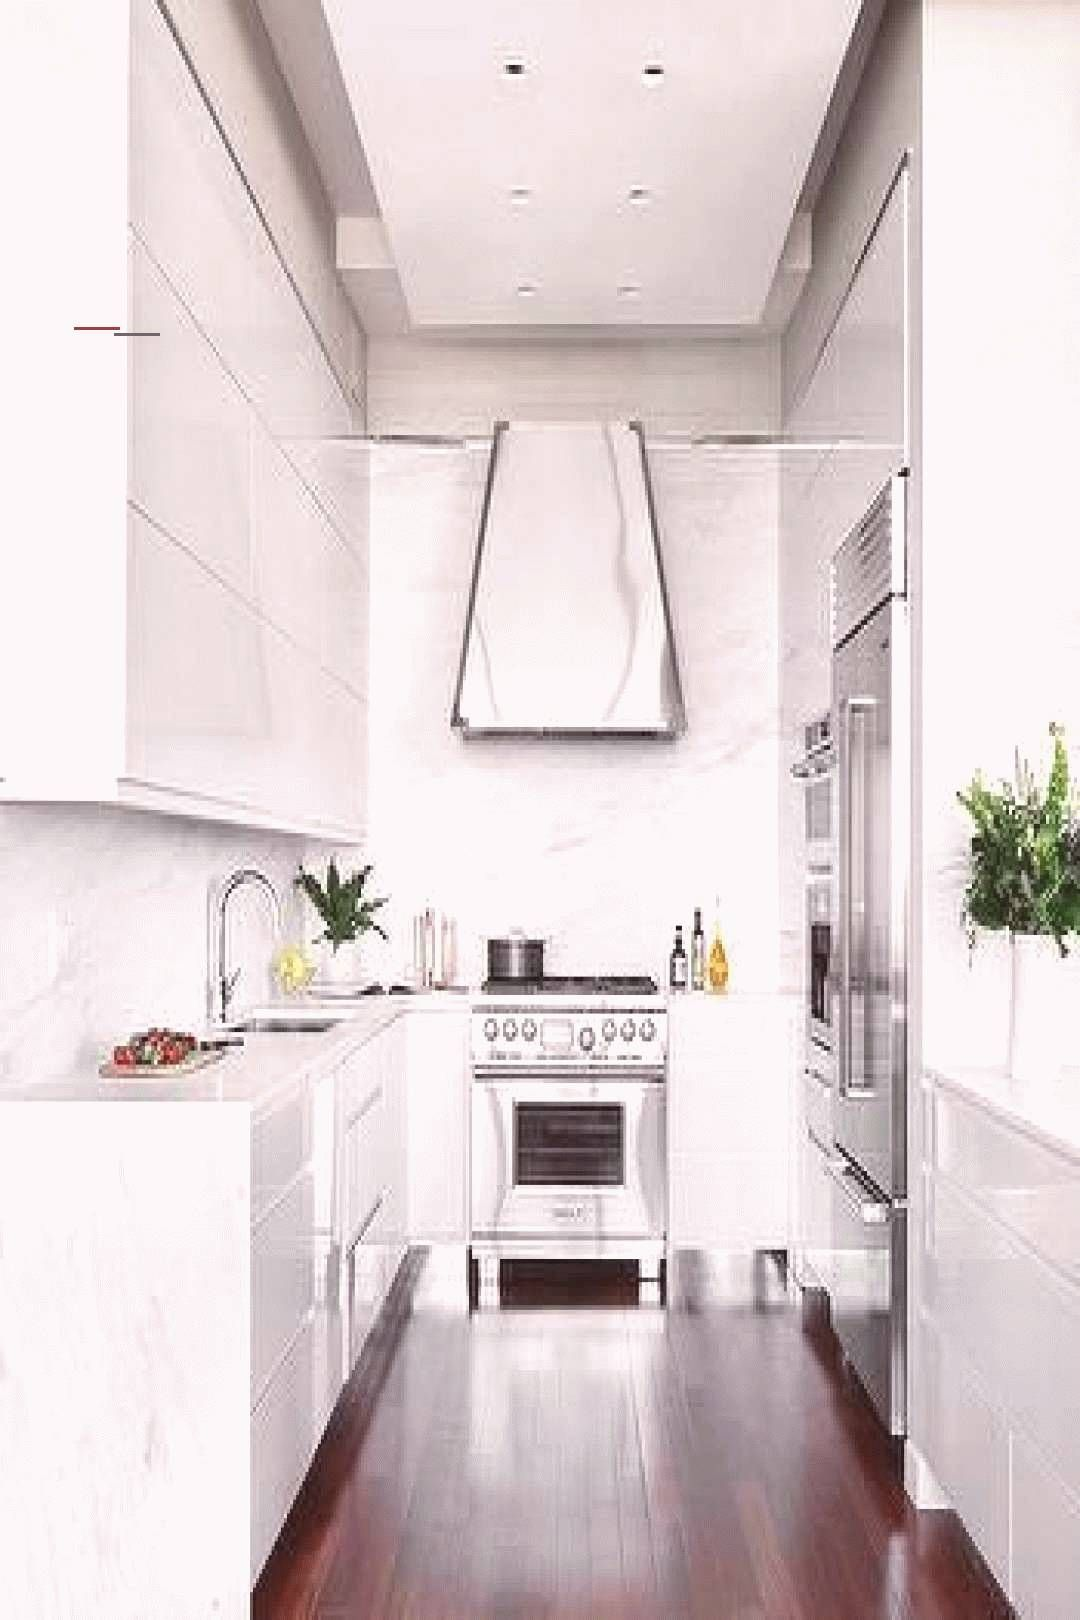 Glossy White Lacquer Cabinets With White Quartz Waterfall Countertop Glossy White Lacquer Cabinets Waterfallcountertop En 2020 Modelos De Cocinas Cocinas Casitas